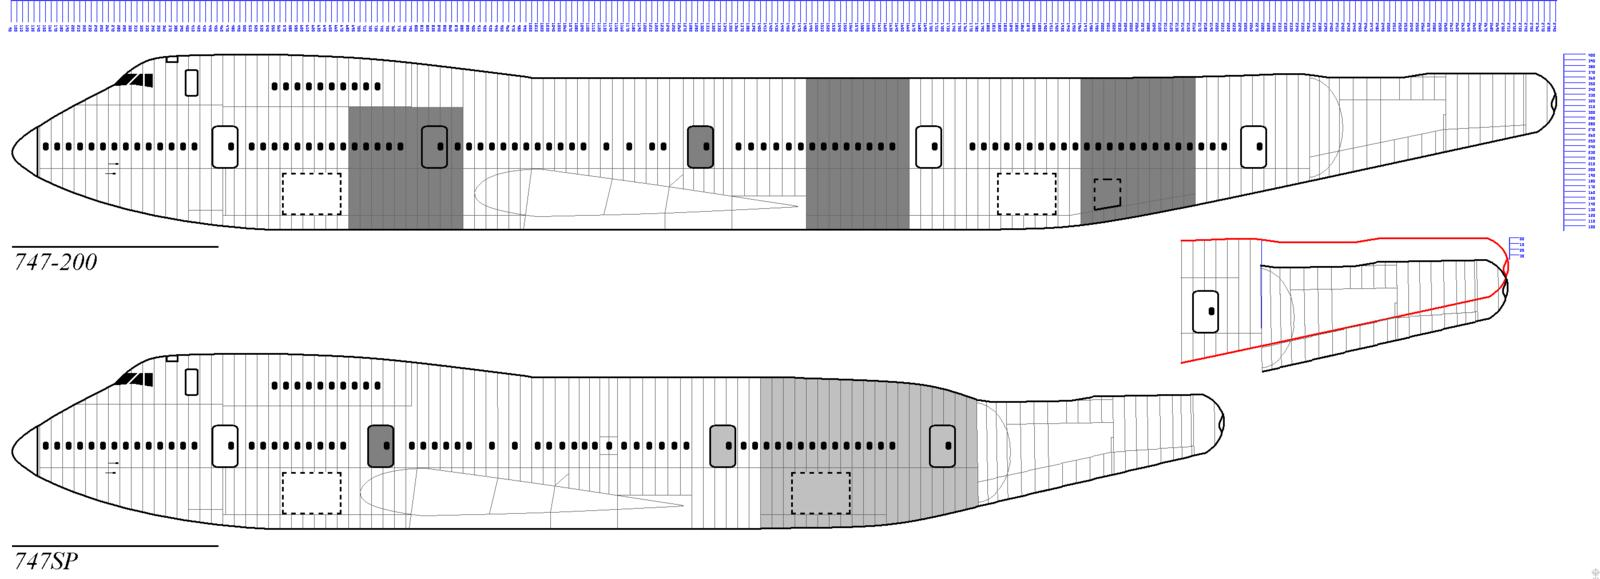 attachment browser  boeing 747 -200  sp compared jpg by commendatore